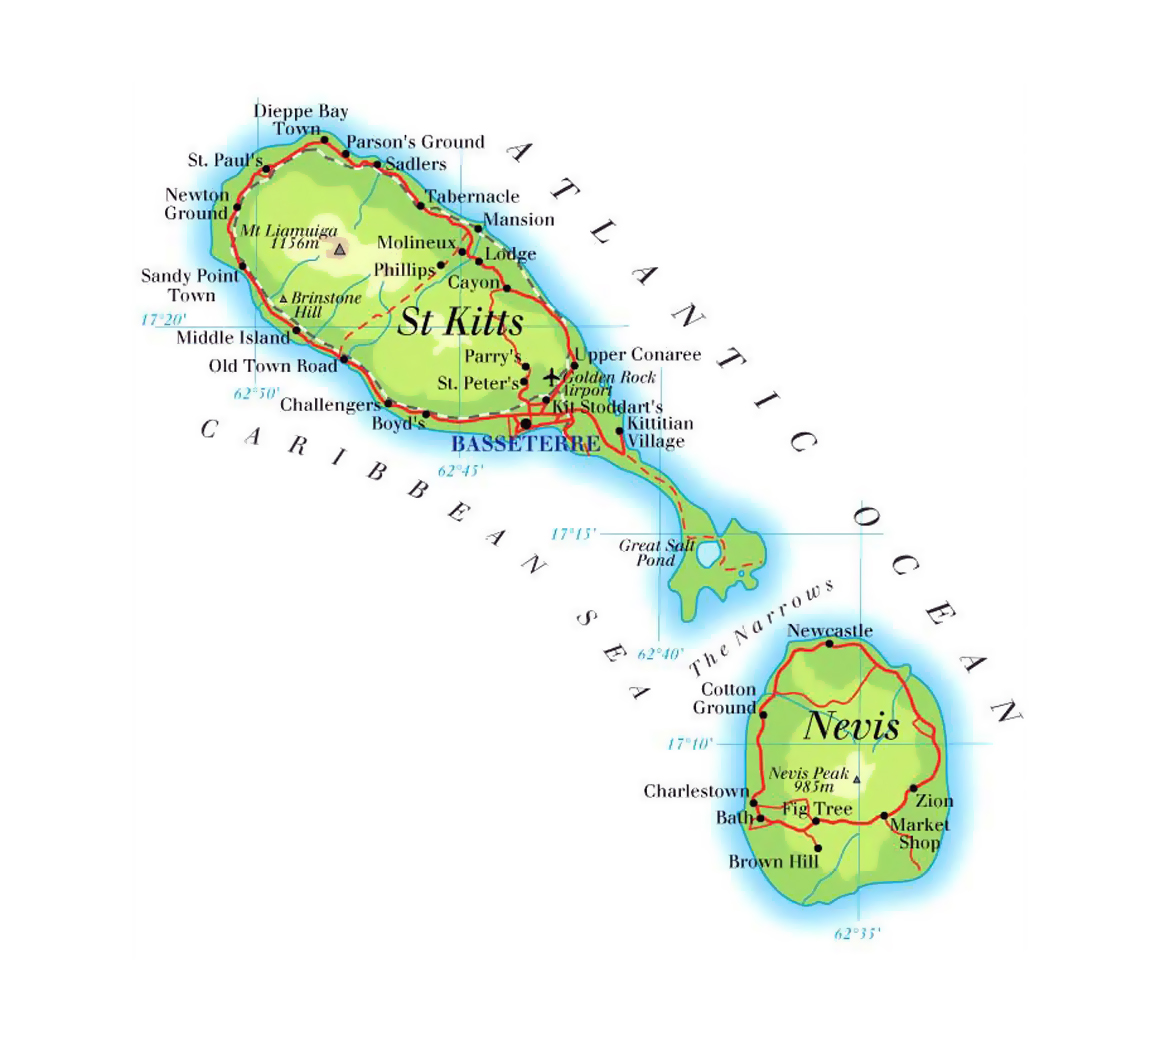 Detailed elevation map of Saint Kitts and Nevis with roads